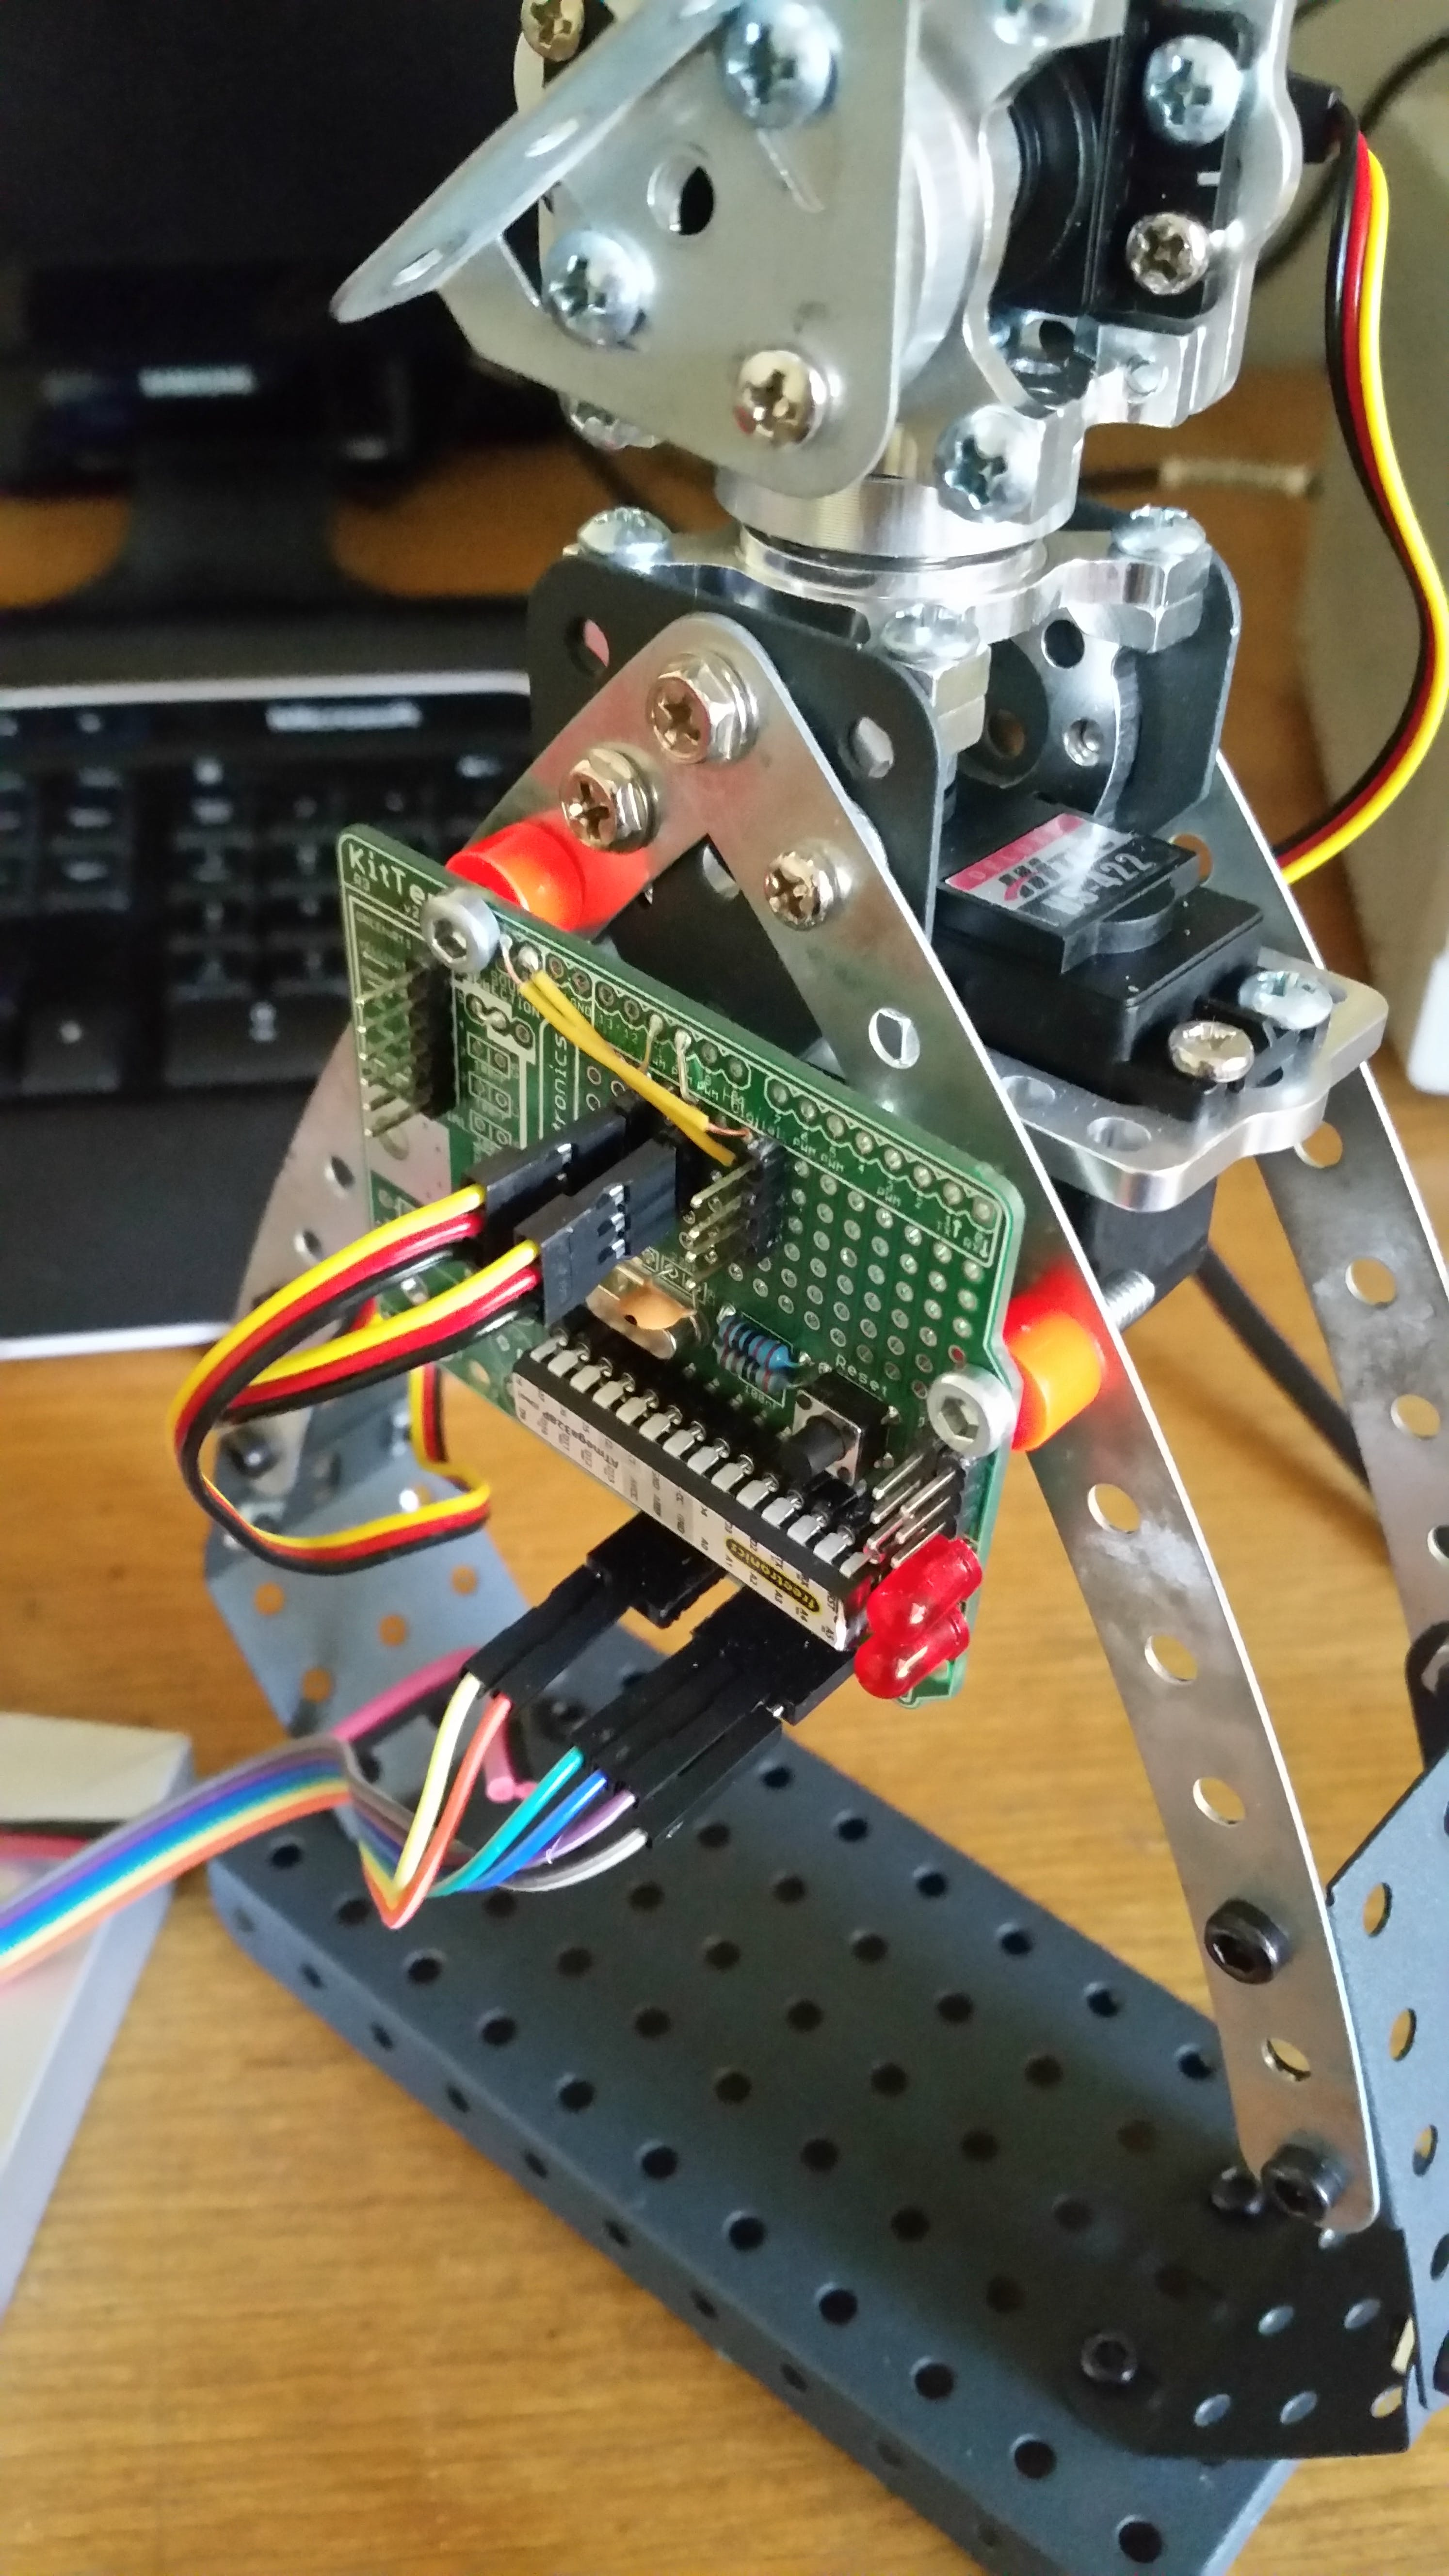 Bare Arduino connected